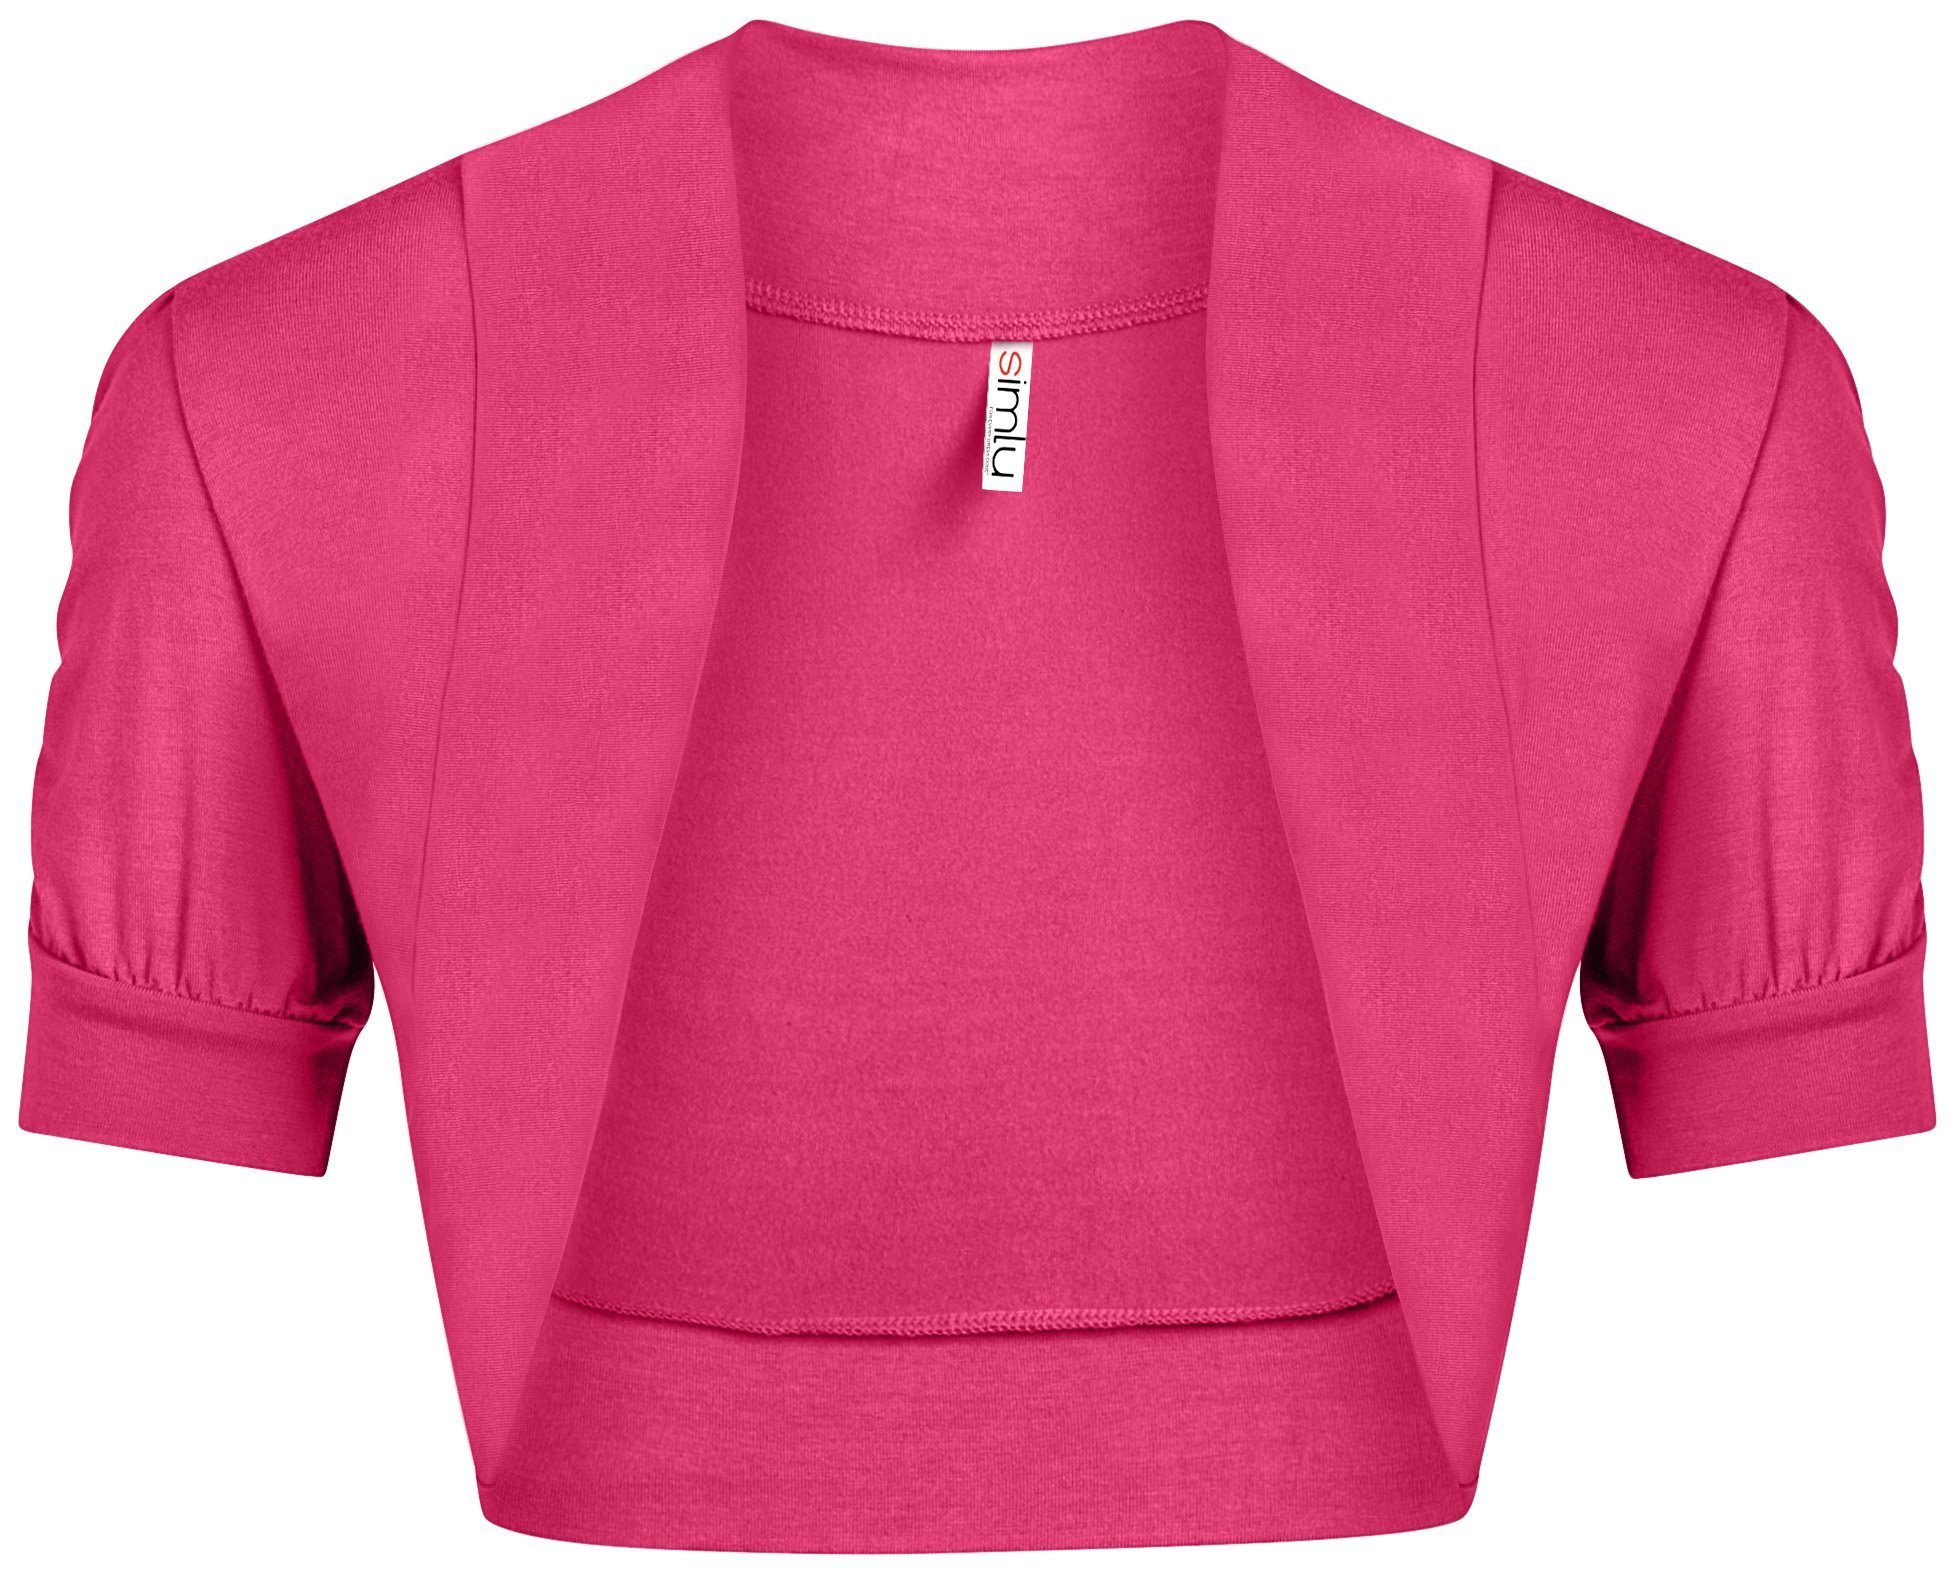 Fuchsia Bolero Shrug for Women Hot Pink Bolero Caridgan Ladies Regular and Plus Size Shrug,Fuchsia,X-Large